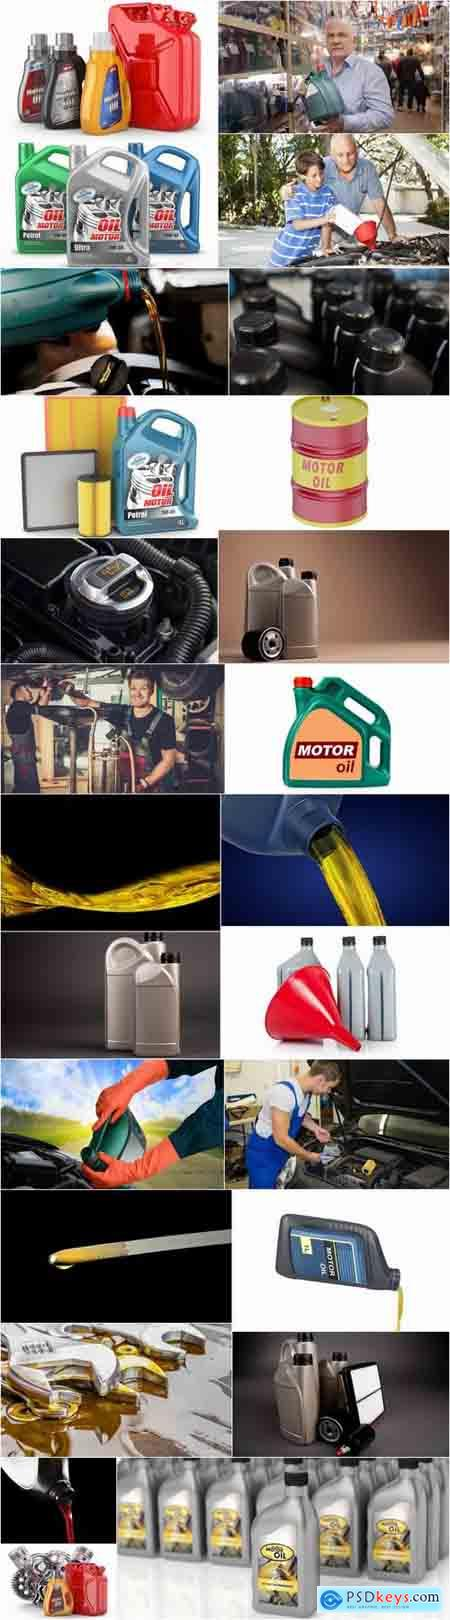 Engine oil lubricant motor vehicle technical services 25 HQ Jpeg